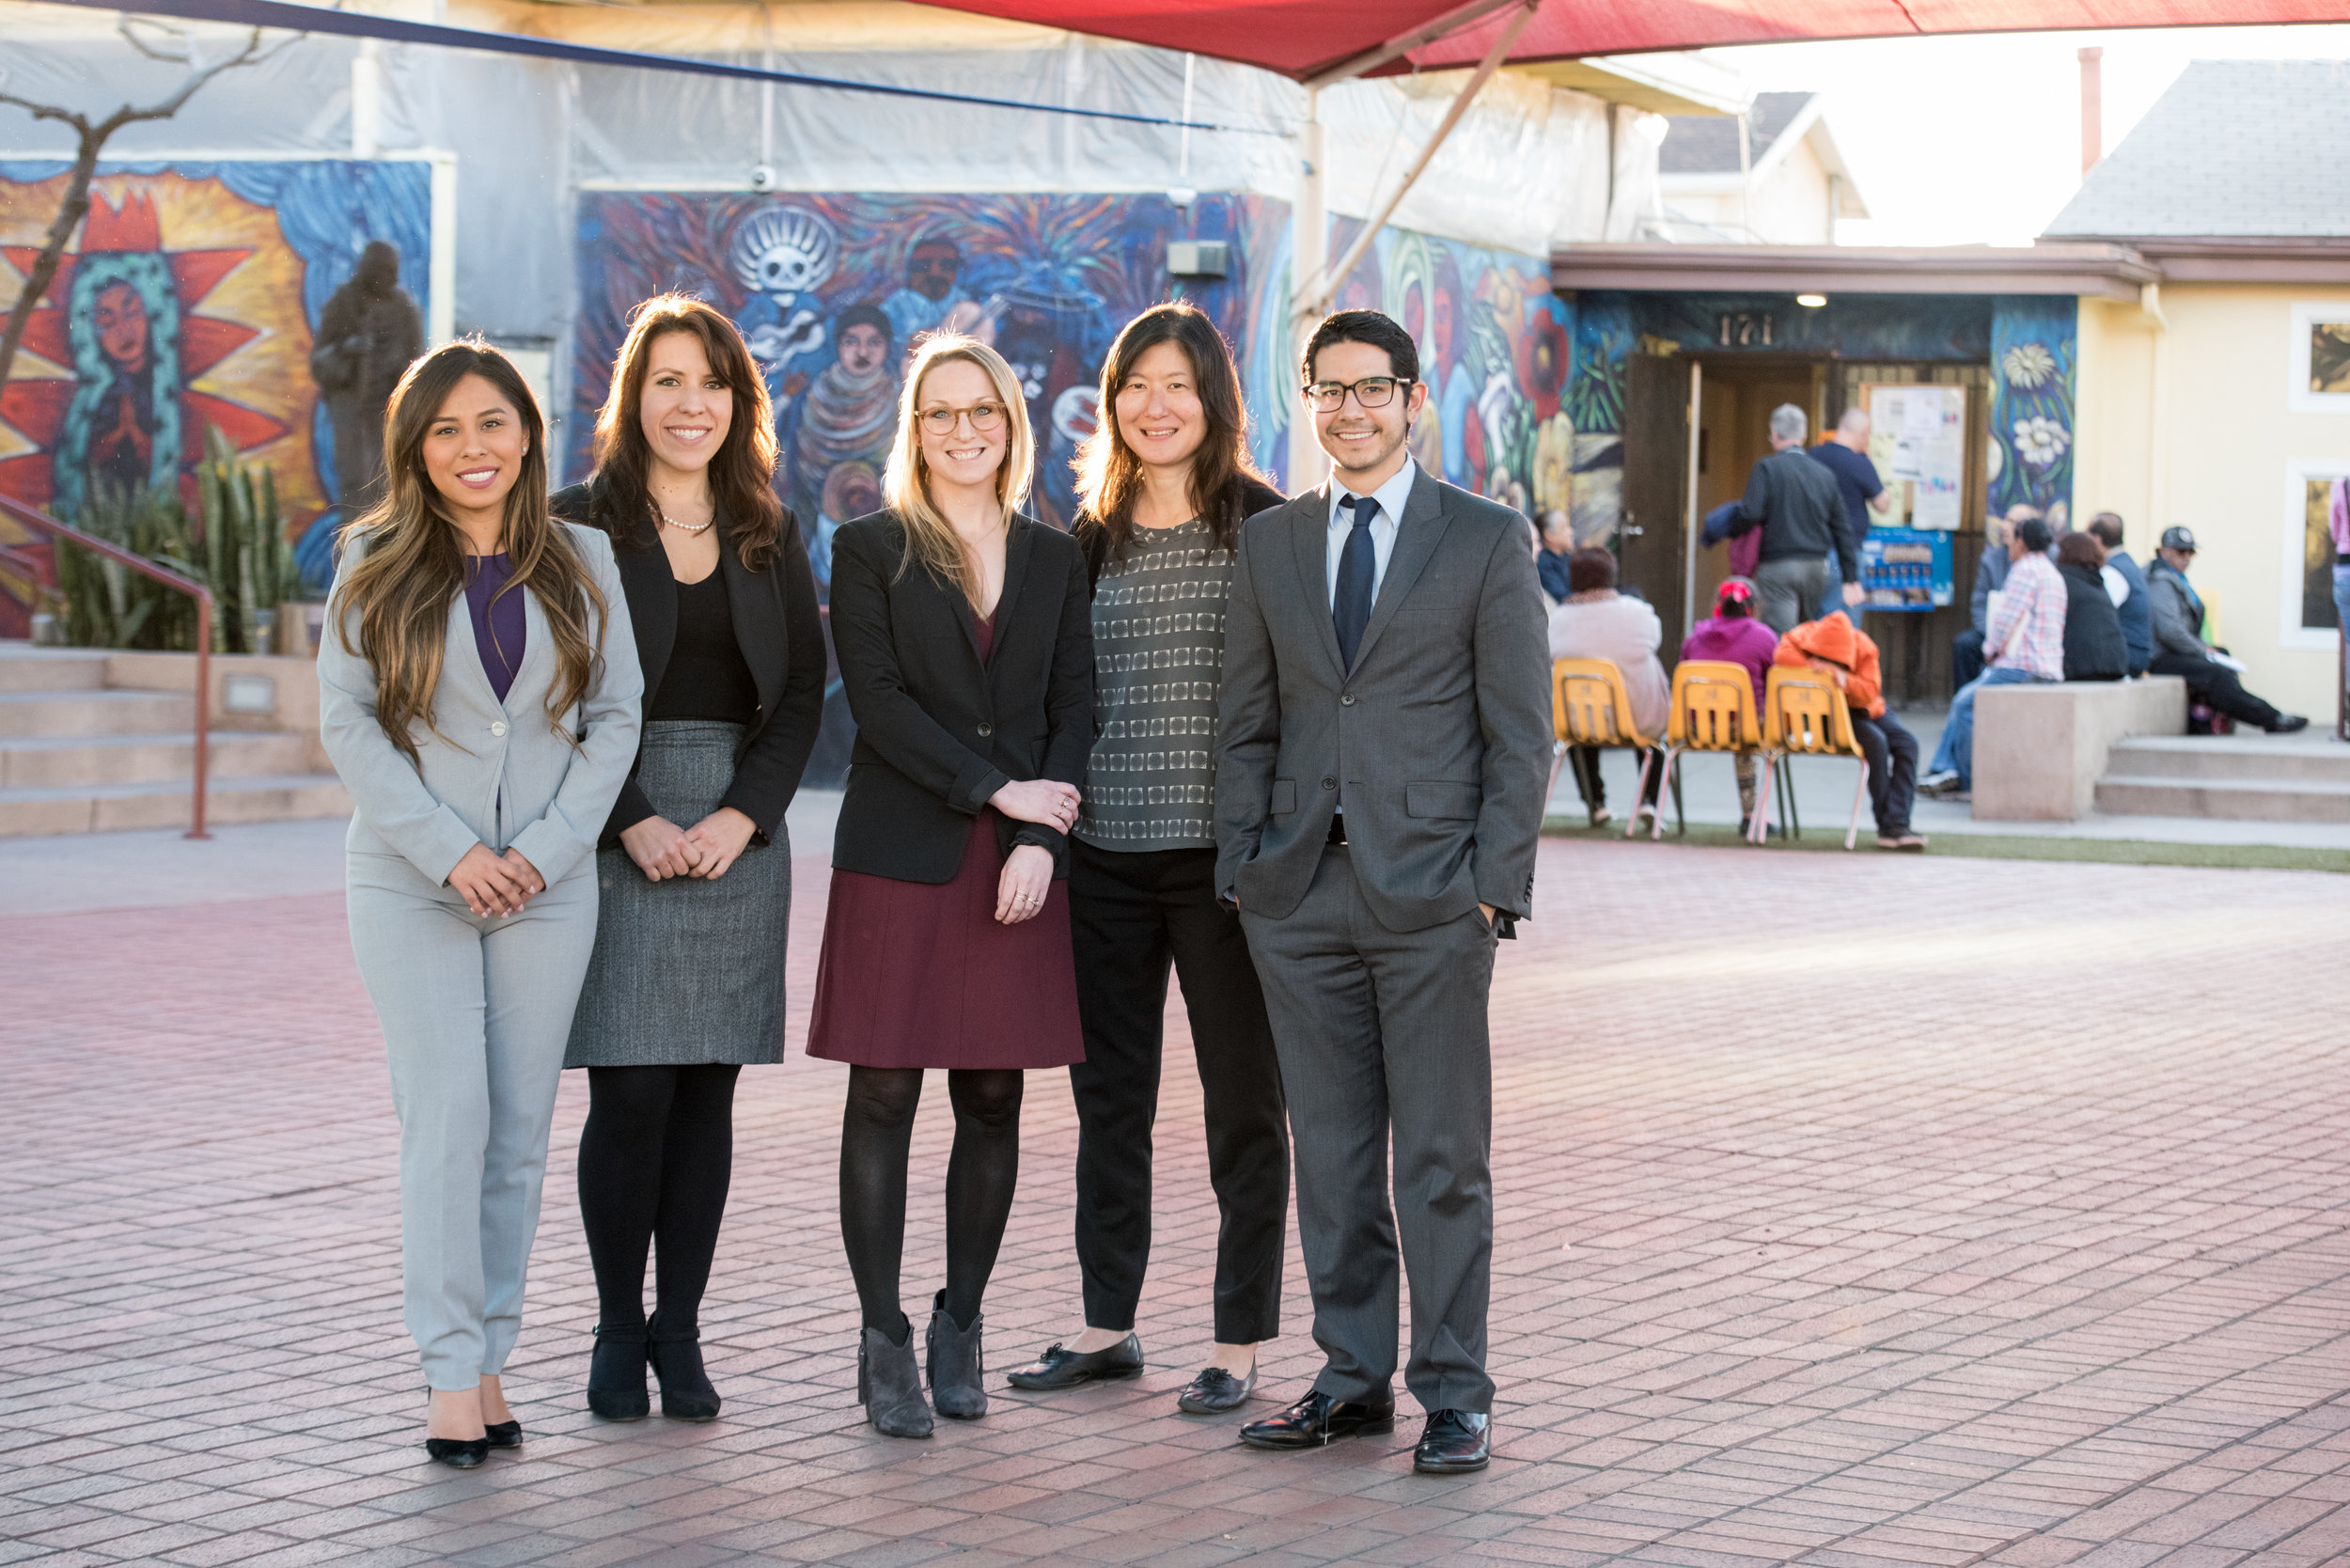 The Loyola Immigrant Justice Clinic at Loyola Law School, Los Angeles is the first law school-housed community-based immigration clinic in the United States. above. (L-R) Sandra Ruiz, staff attorney; Marissa Montes '12, co-director; Emily Robinson '12, co-director; Professor Kathleen Kim, faculty adviser; Alejandro Barajas, staff attorney (photo by Loyola Marymount University)